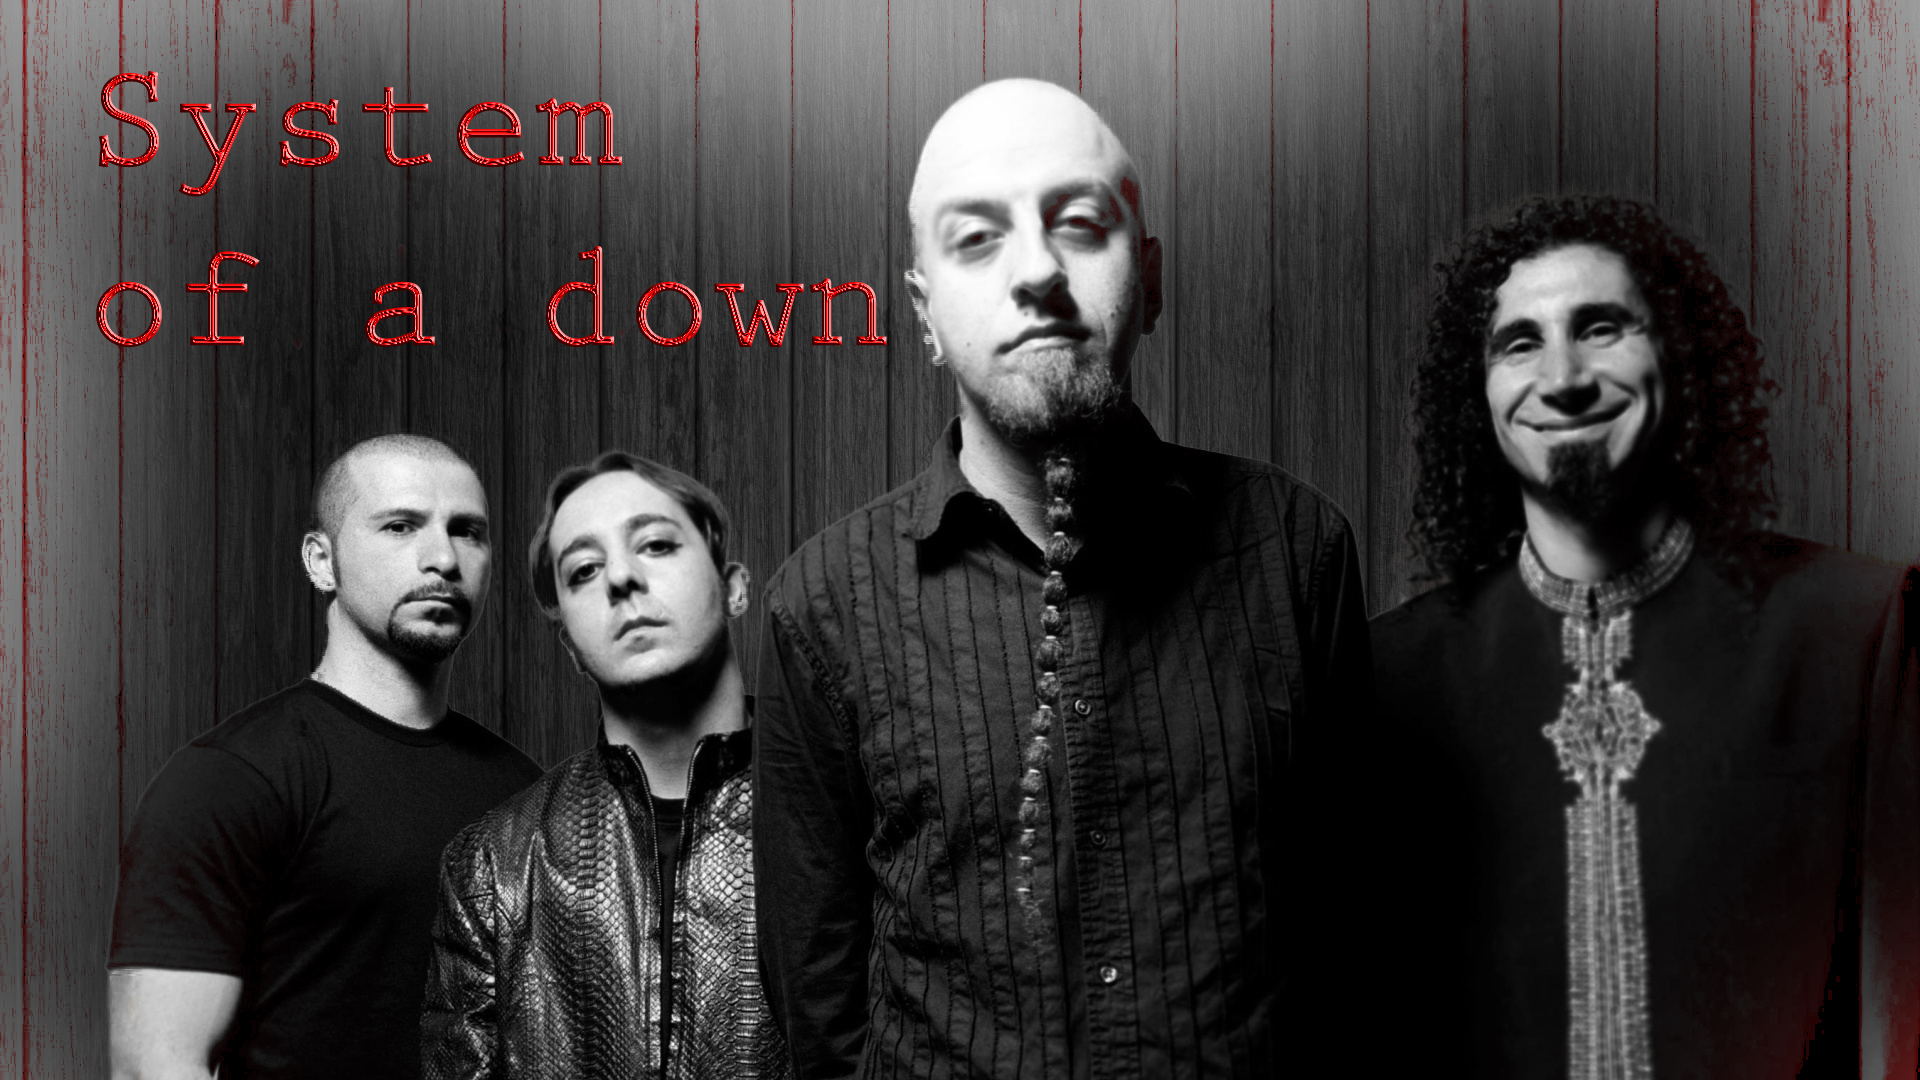 system of a down computer wallpapers desktop backgrounds